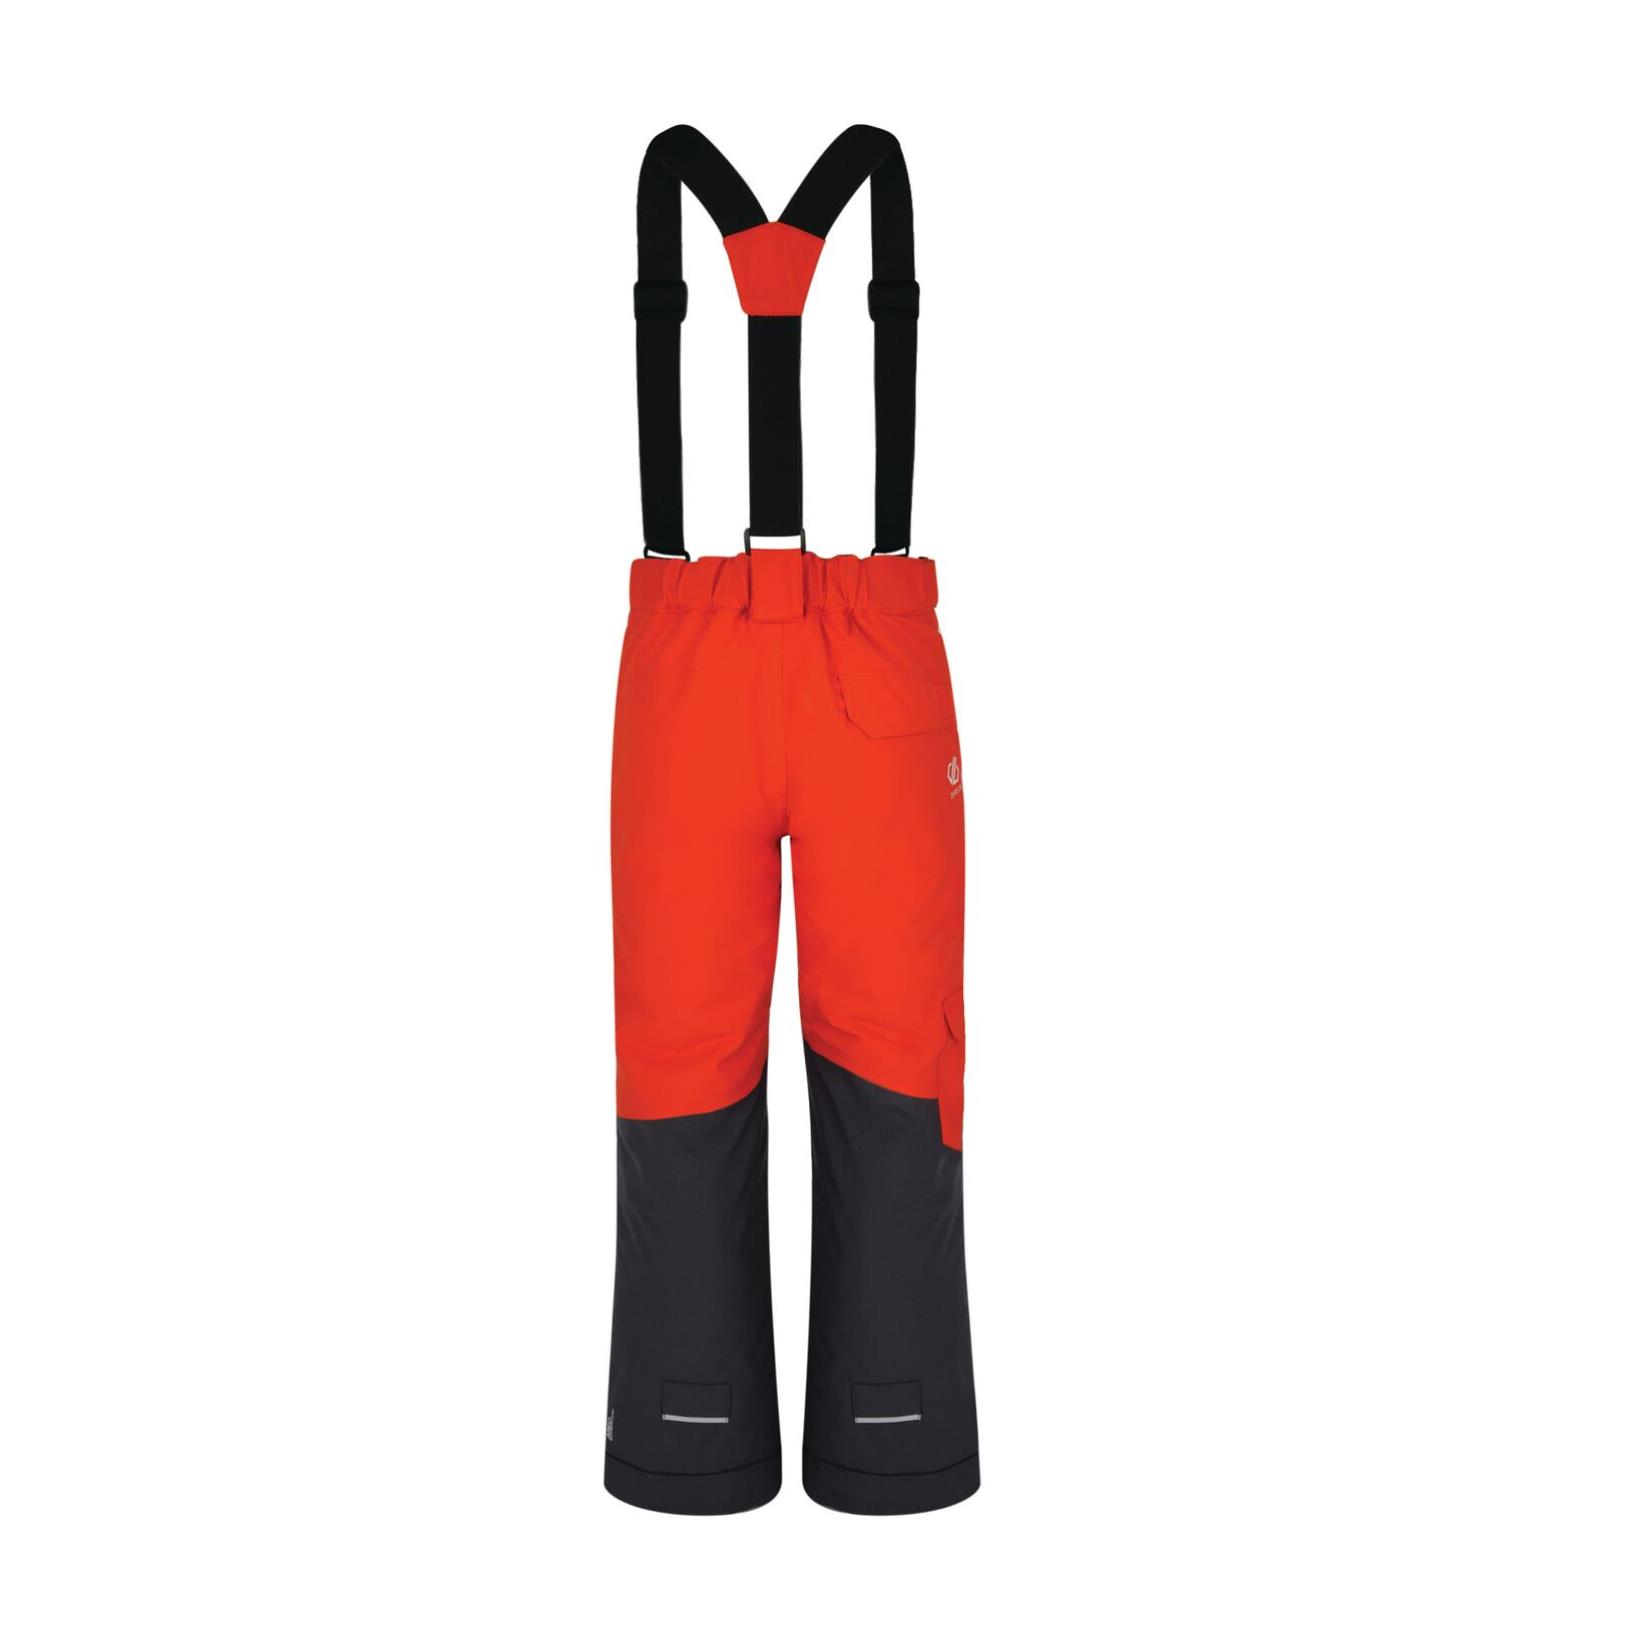 dare2b Timeout Pant Kinder Ski - und Snowboardhose orange-grau Gr. 116 Kinder von Dare2b